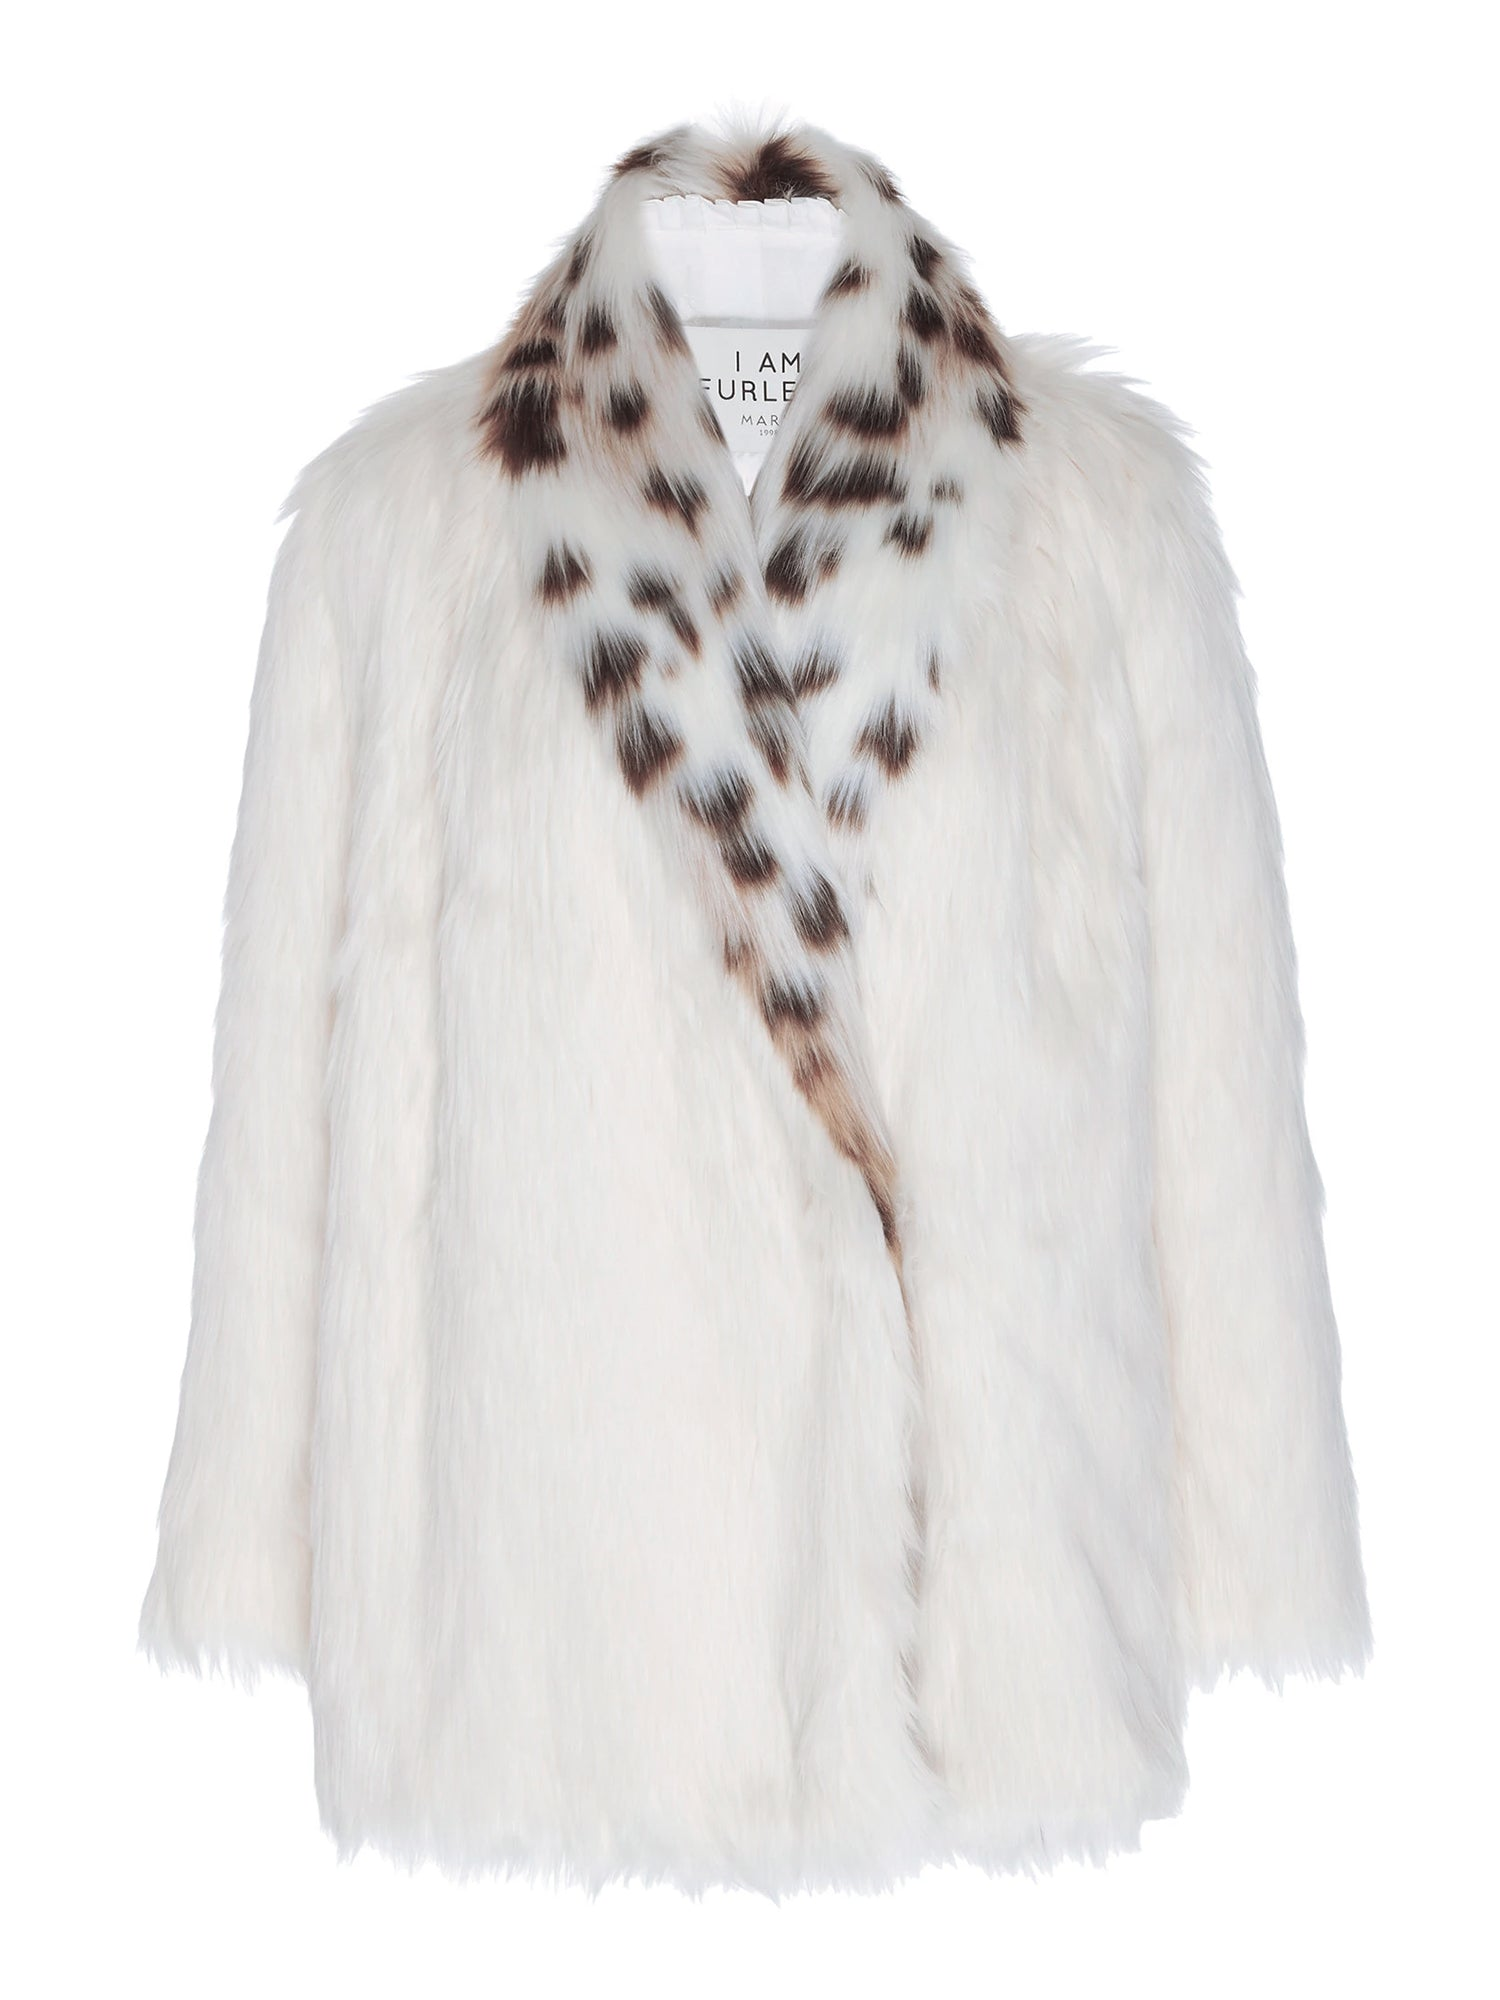 A Packshot Of Marei1998's Tiger Lily Faux Fur Coat In White Color. Featuring Oversized Silhouette And Shawl Collar. Spotted Collar Design Contrasts The Elegant White Hue, Creating A Chic Look. Front View. Resort 2020 Collection - Furless Friendship.